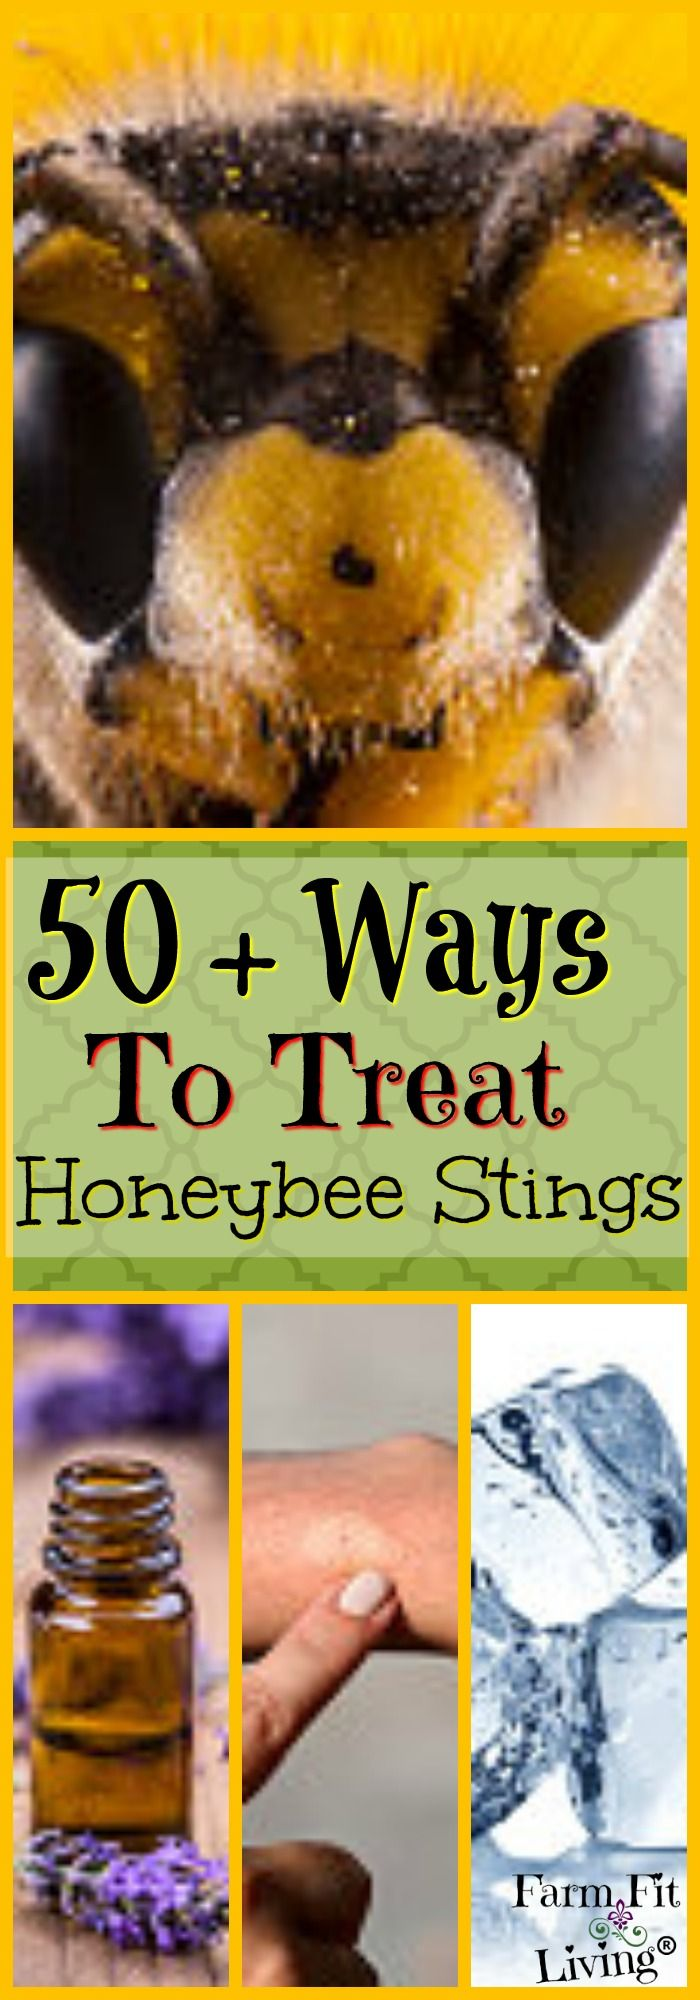 Did you get stung by a bee? Here are 50+ ways to treat honeybee stings from over 100 beekeepers. via @www.pinterest.com/farmfitliving